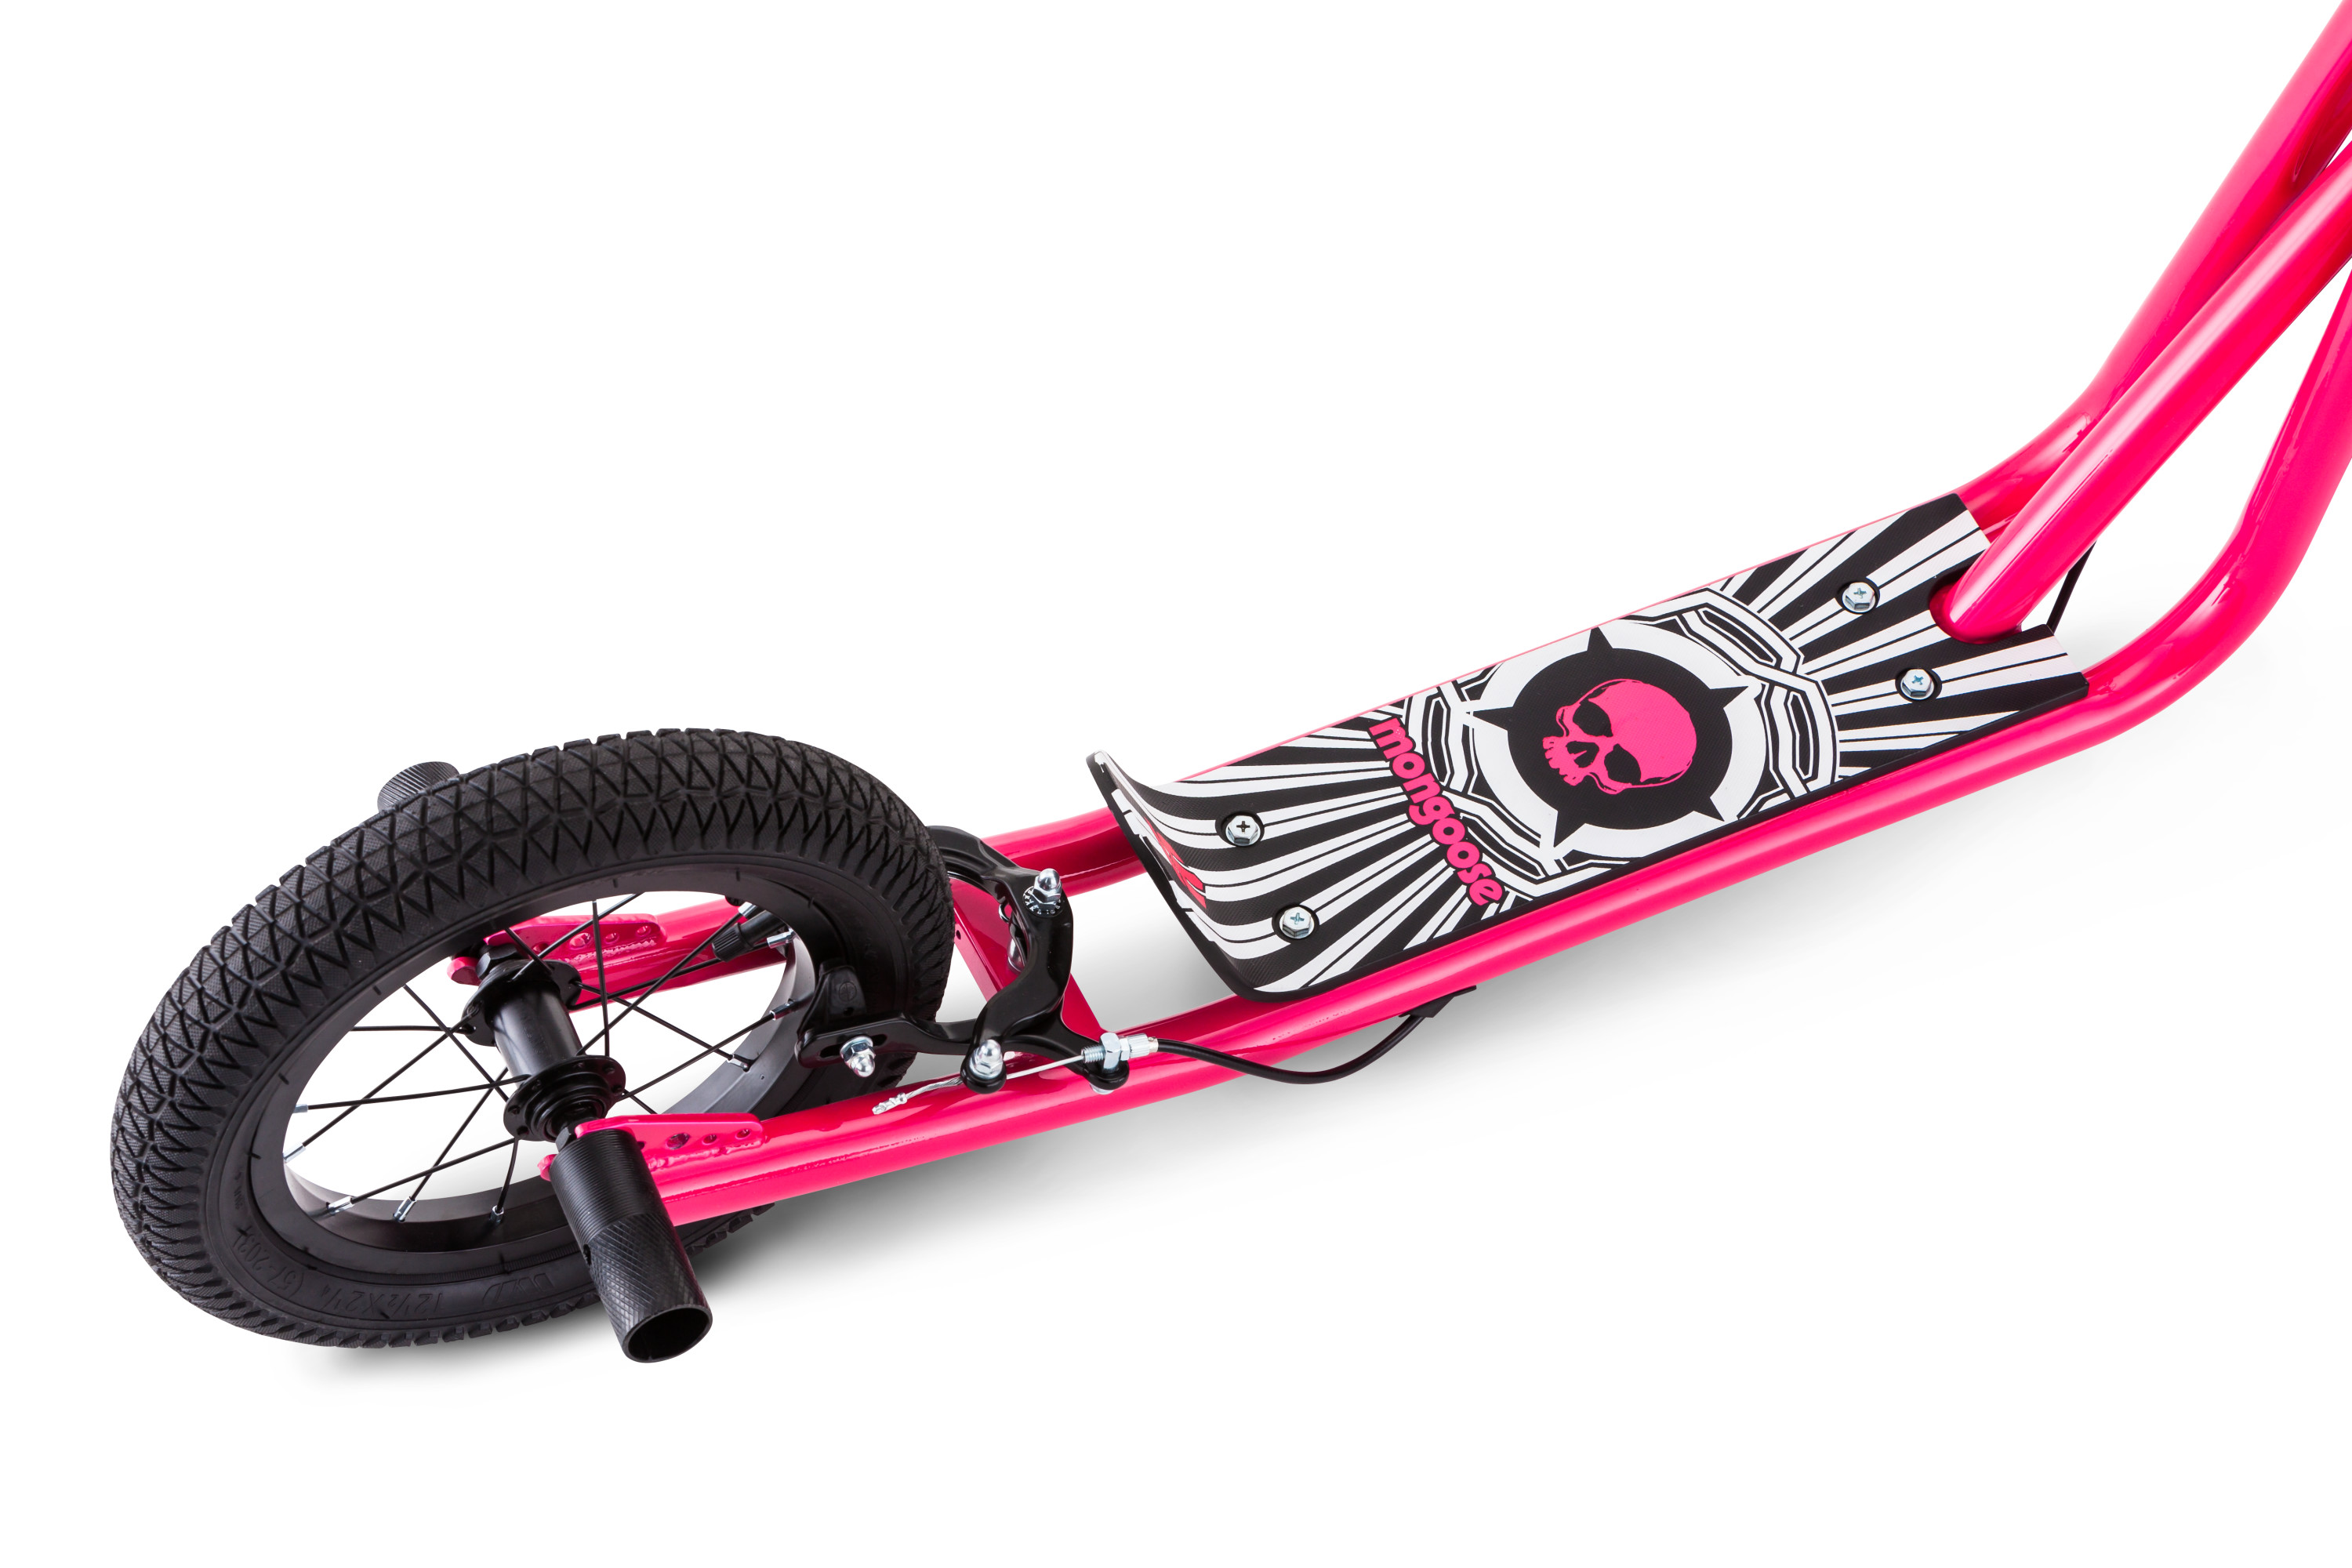 """12/"""" Expo Scooter Alloy Caliper Hand Brakes Stability While Coasting Covered Pink"""